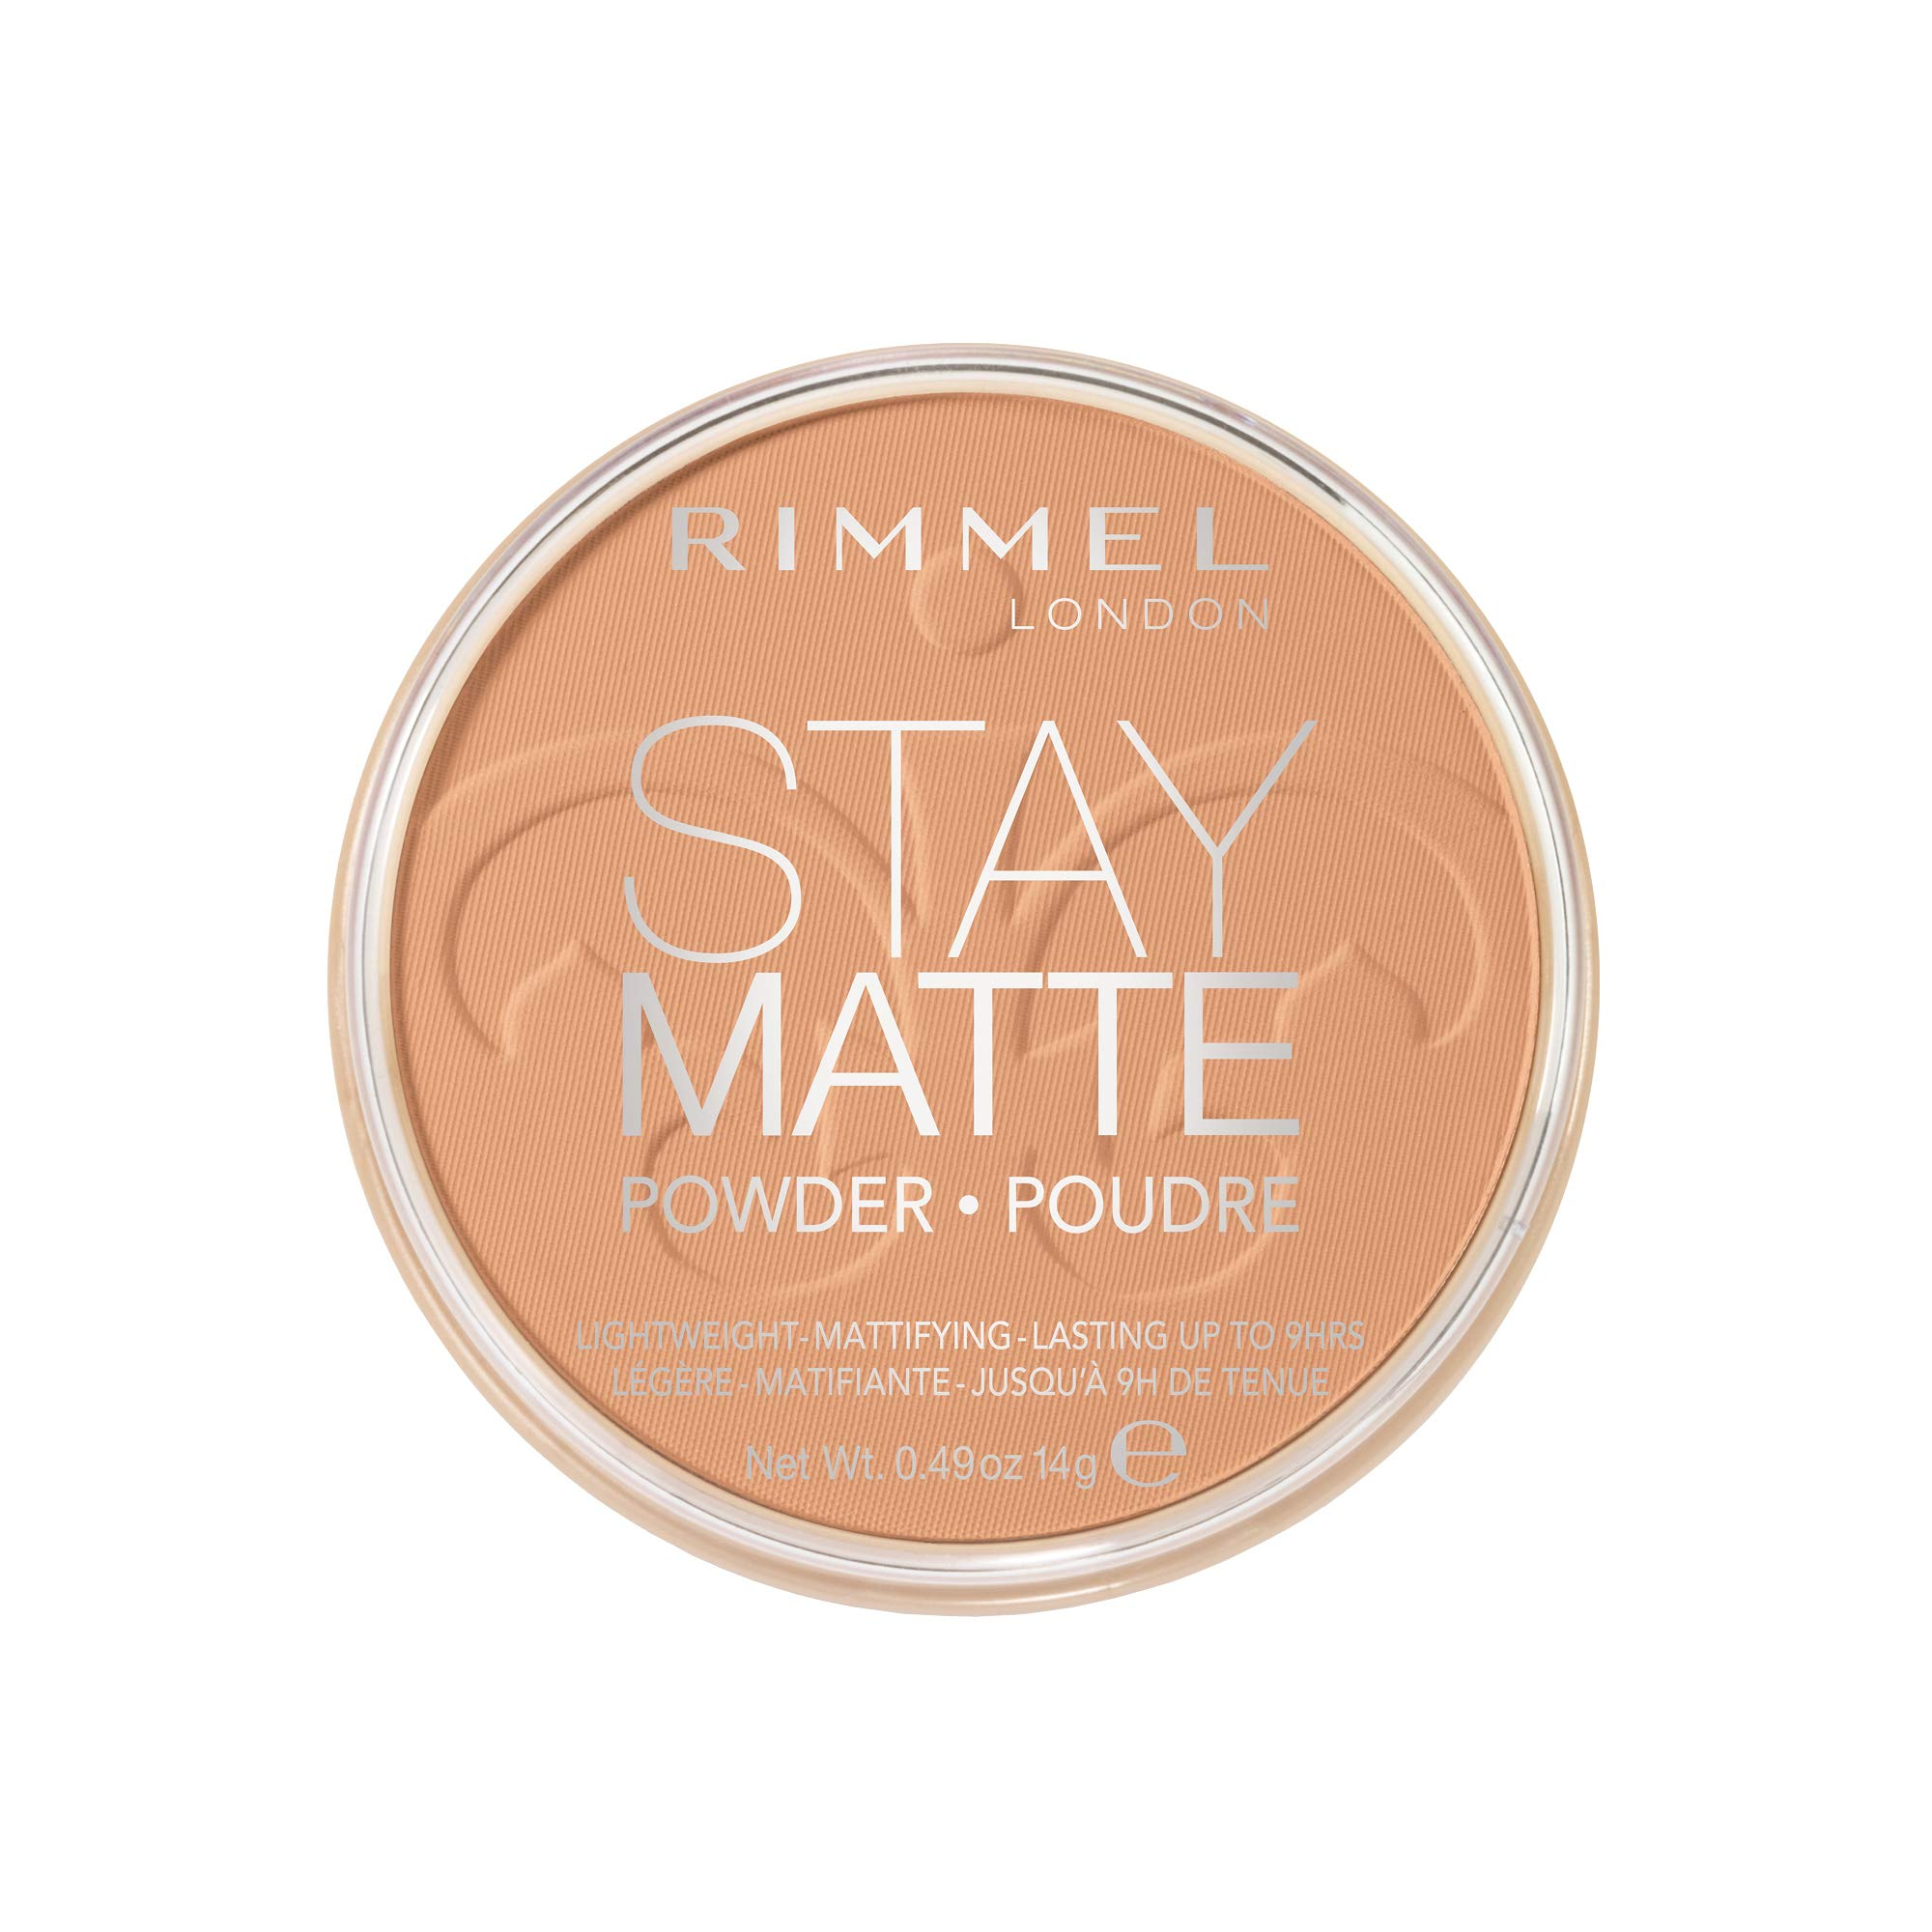 Stay Matte Pressed Powder in 021 Nude, 0.49 Ounce (Pack of 1)